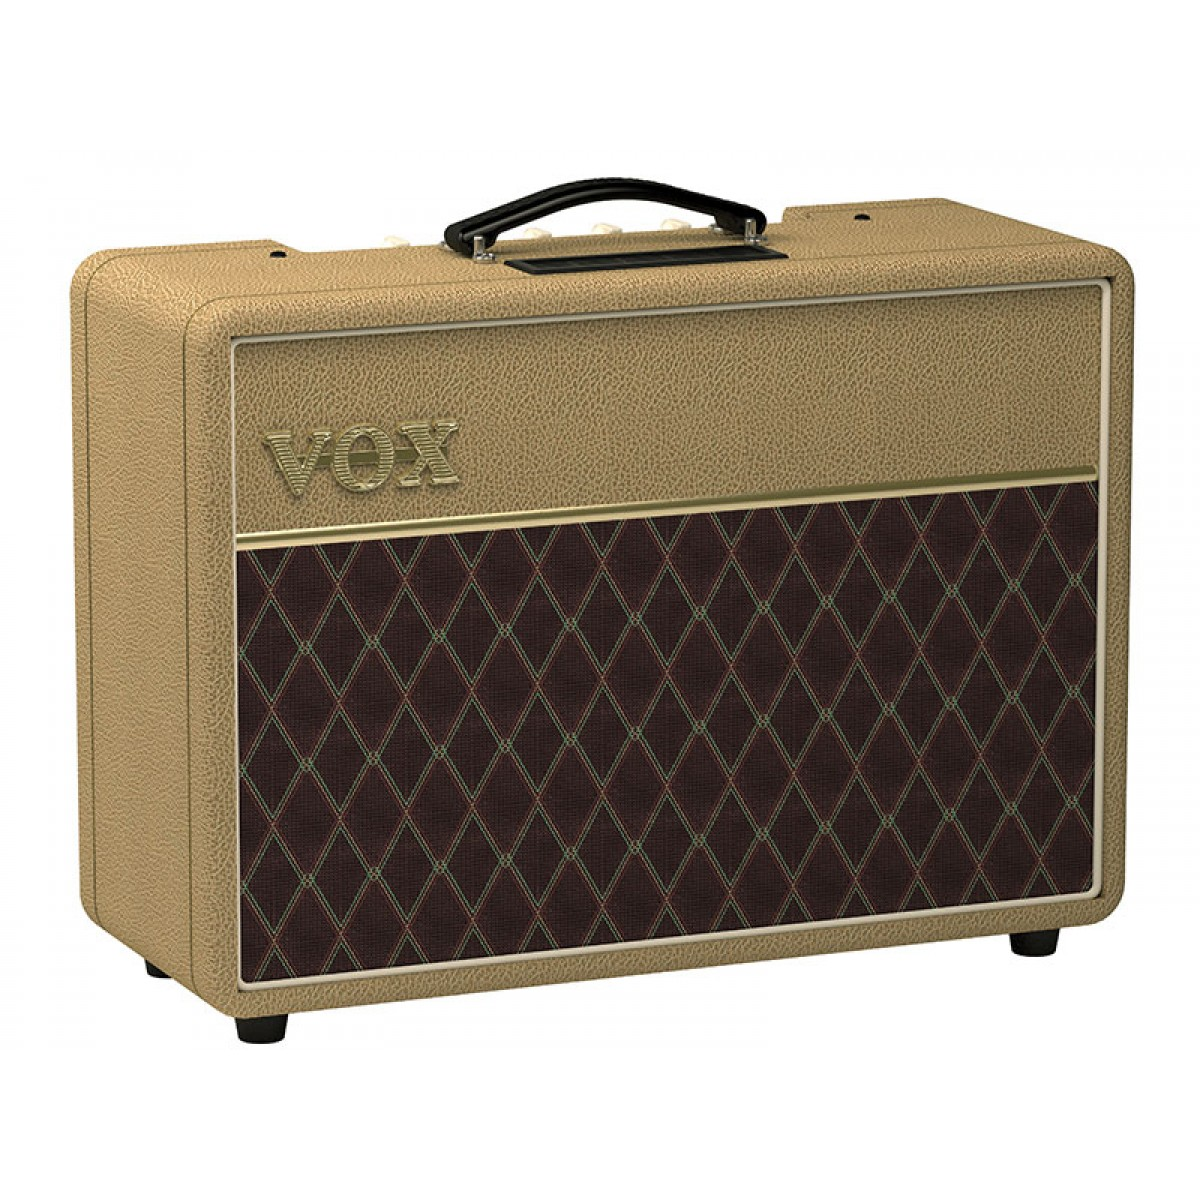 vox ac10c1 custom 10w guitar combo amplifier. Black Bedroom Furniture Sets. Home Design Ideas